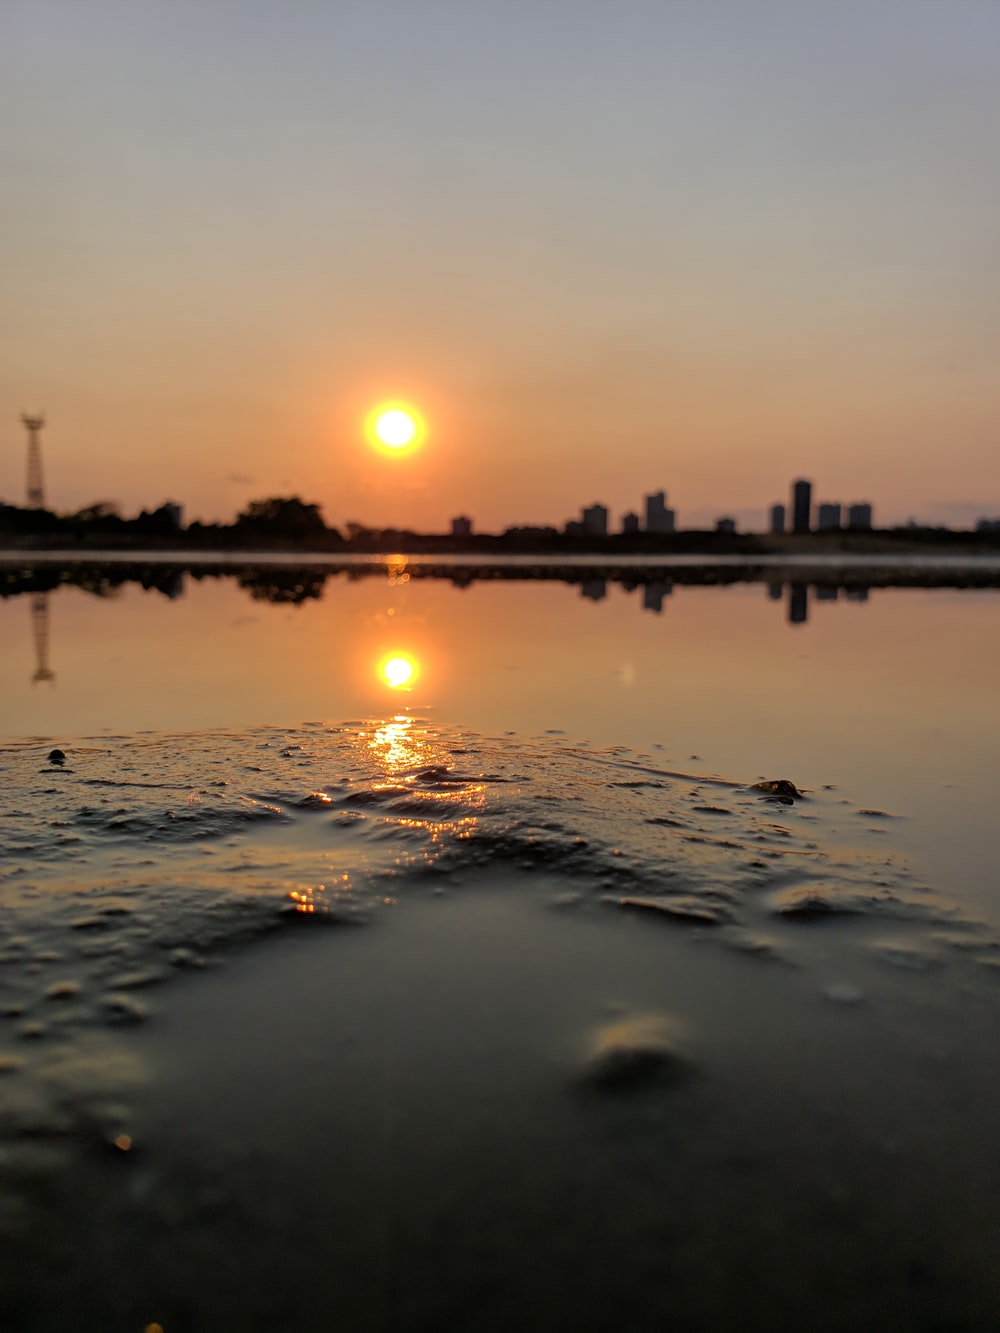 sunrise at the city through body of water